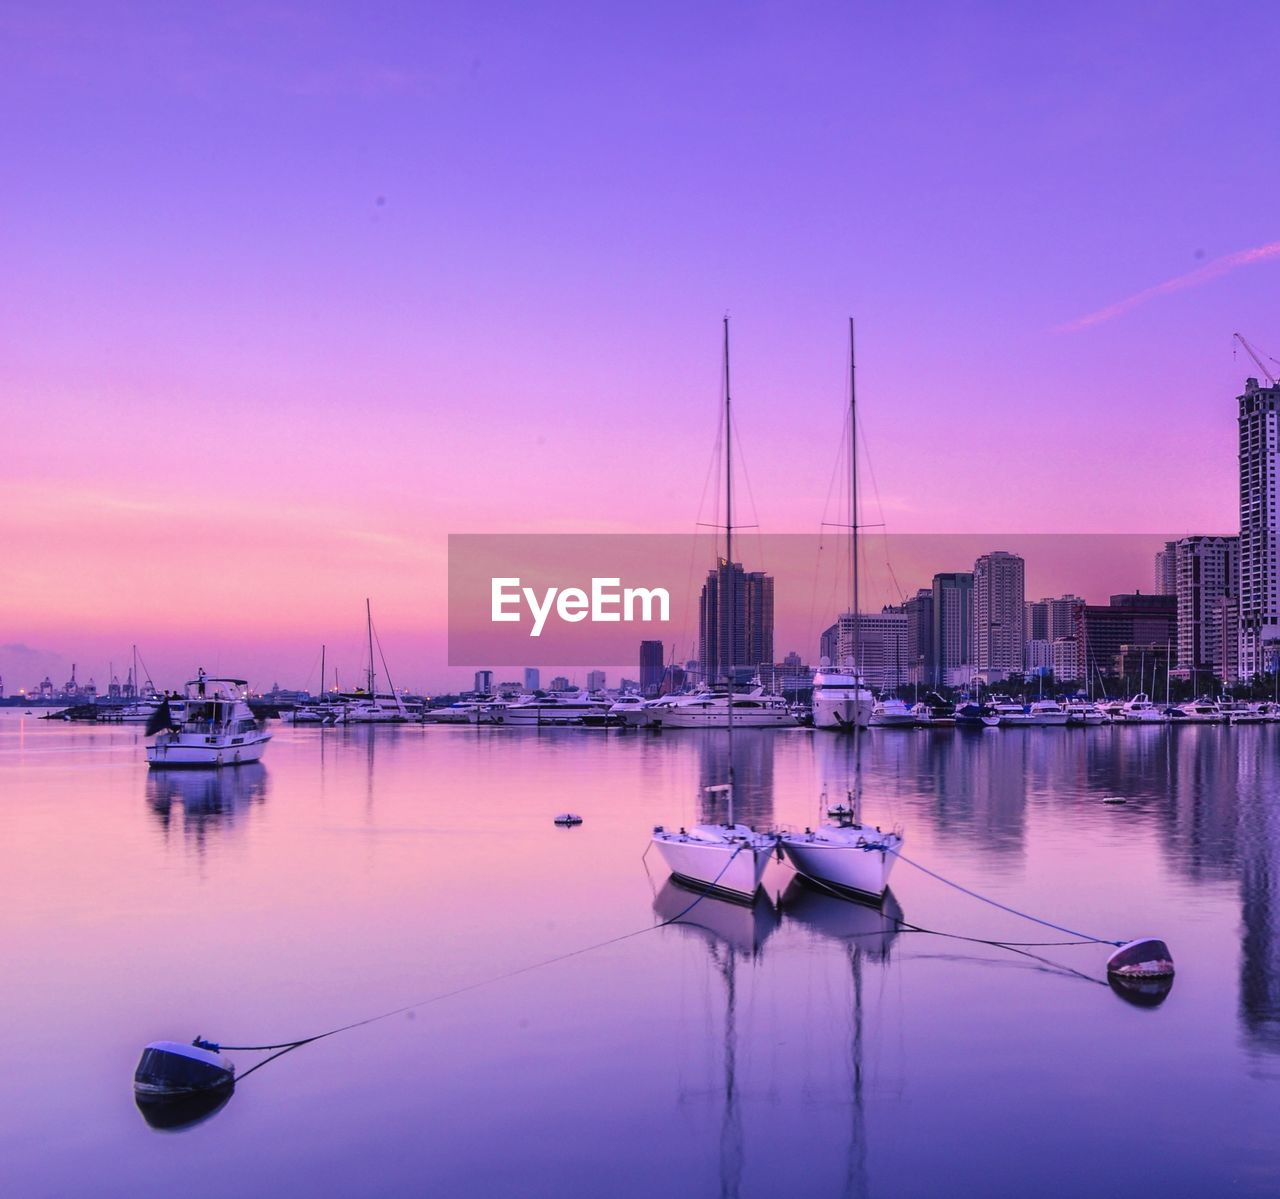 water, nautical vessel, sky, transportation, sunset, mode of transportation, reflection, architecture, building exterior, moored, built structure, waterfront, no people, city, nature, purple, tranquility, orange color, pink color, sailboat, outdoors, marina, office building exterior, skyscraper